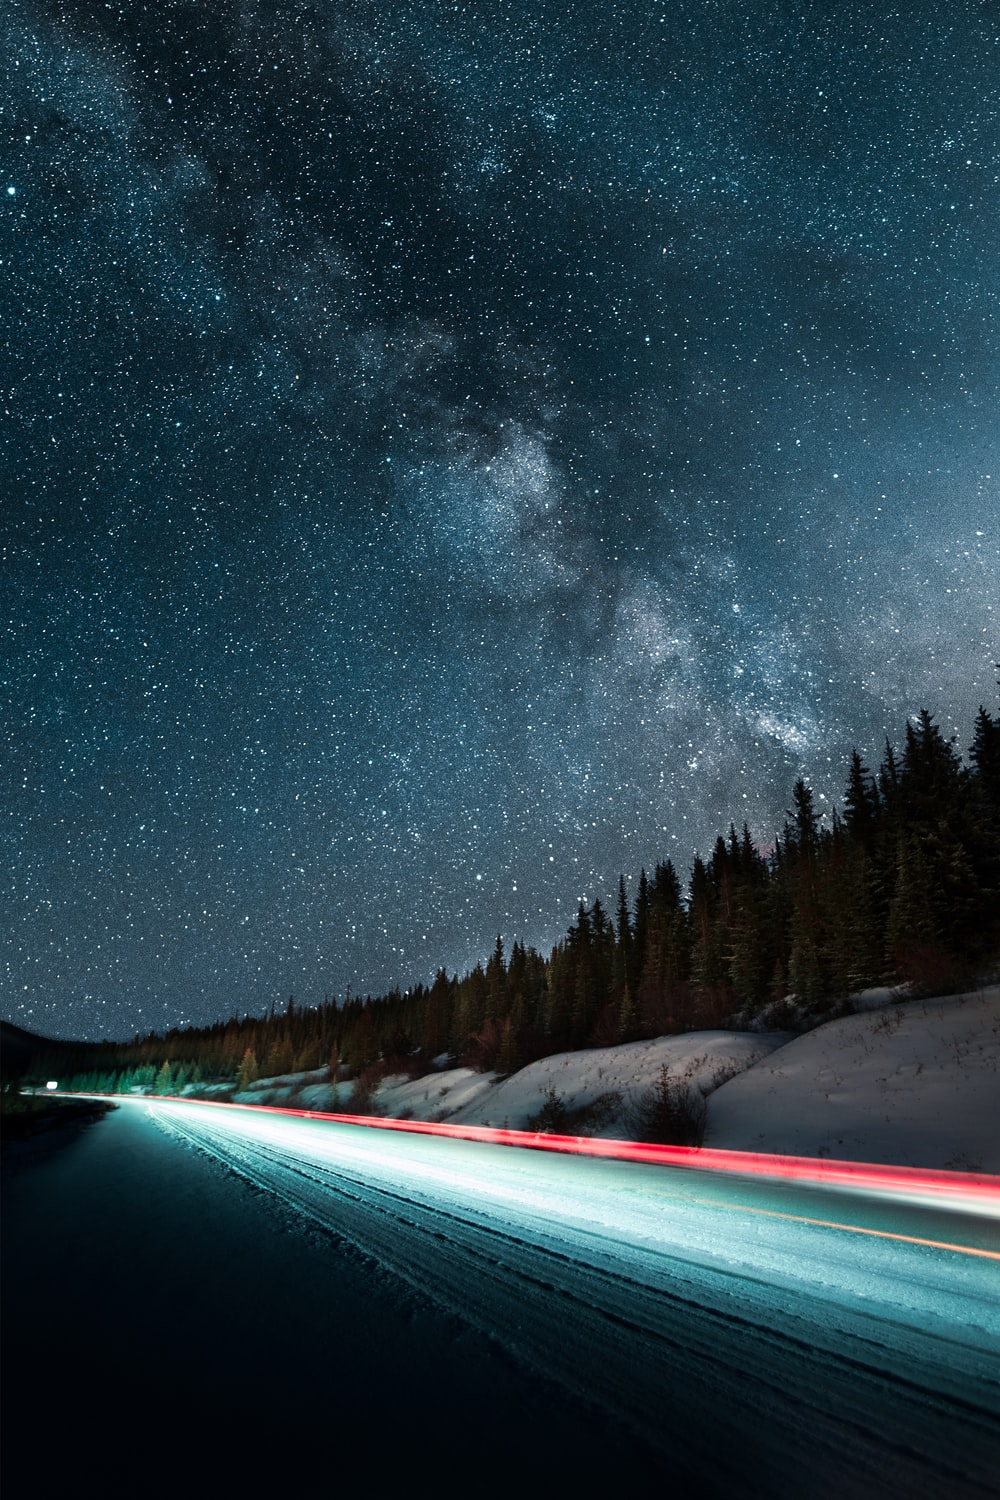 long-exposure photography of vehicle light